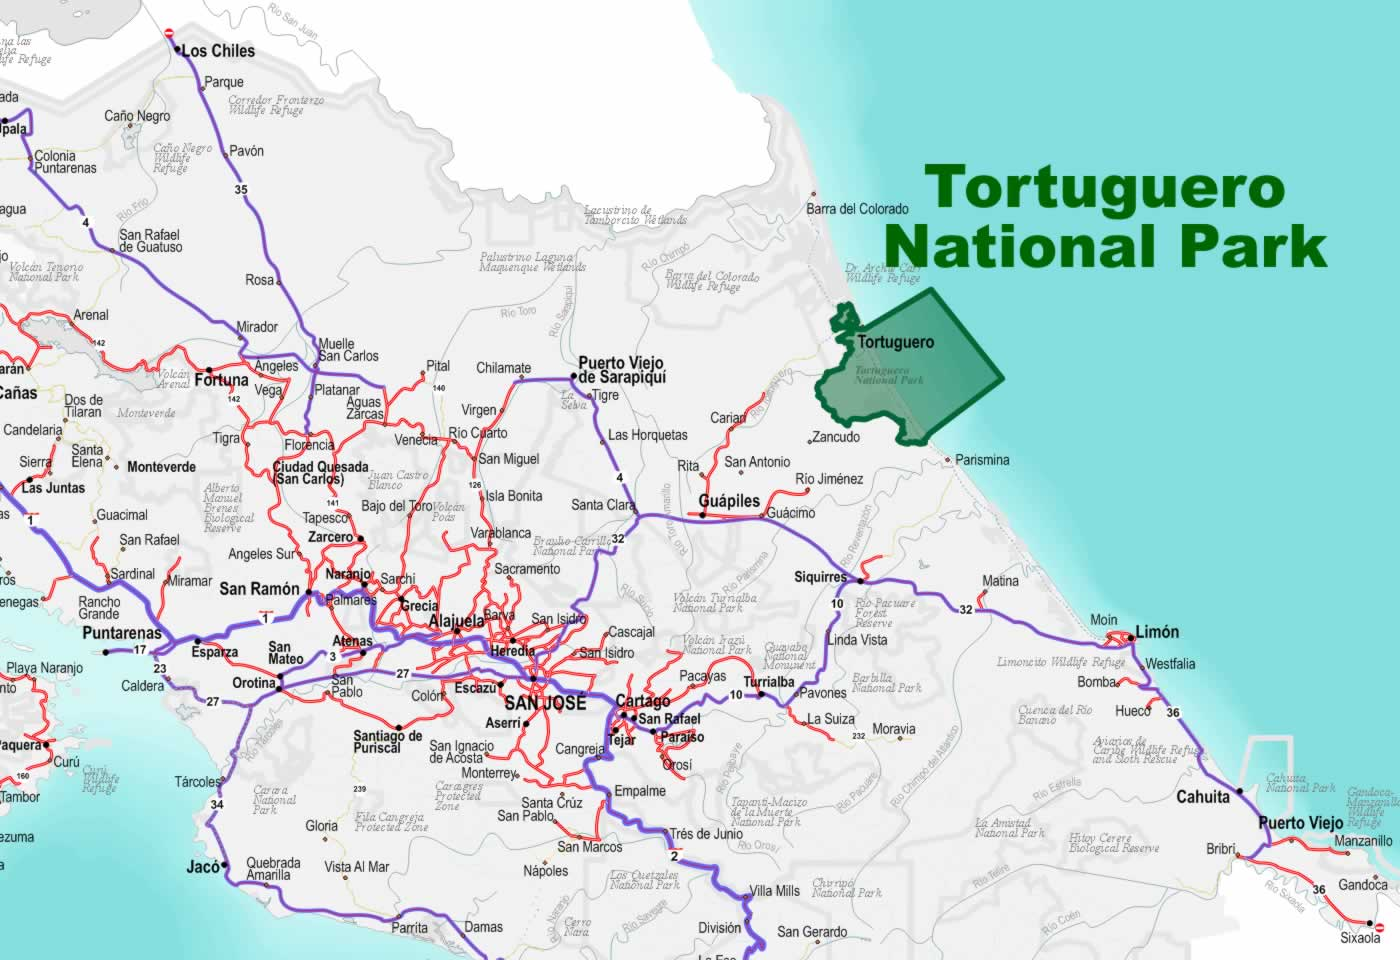 Tortuguero National Park – Tourist Attractions Map In Costa Rica